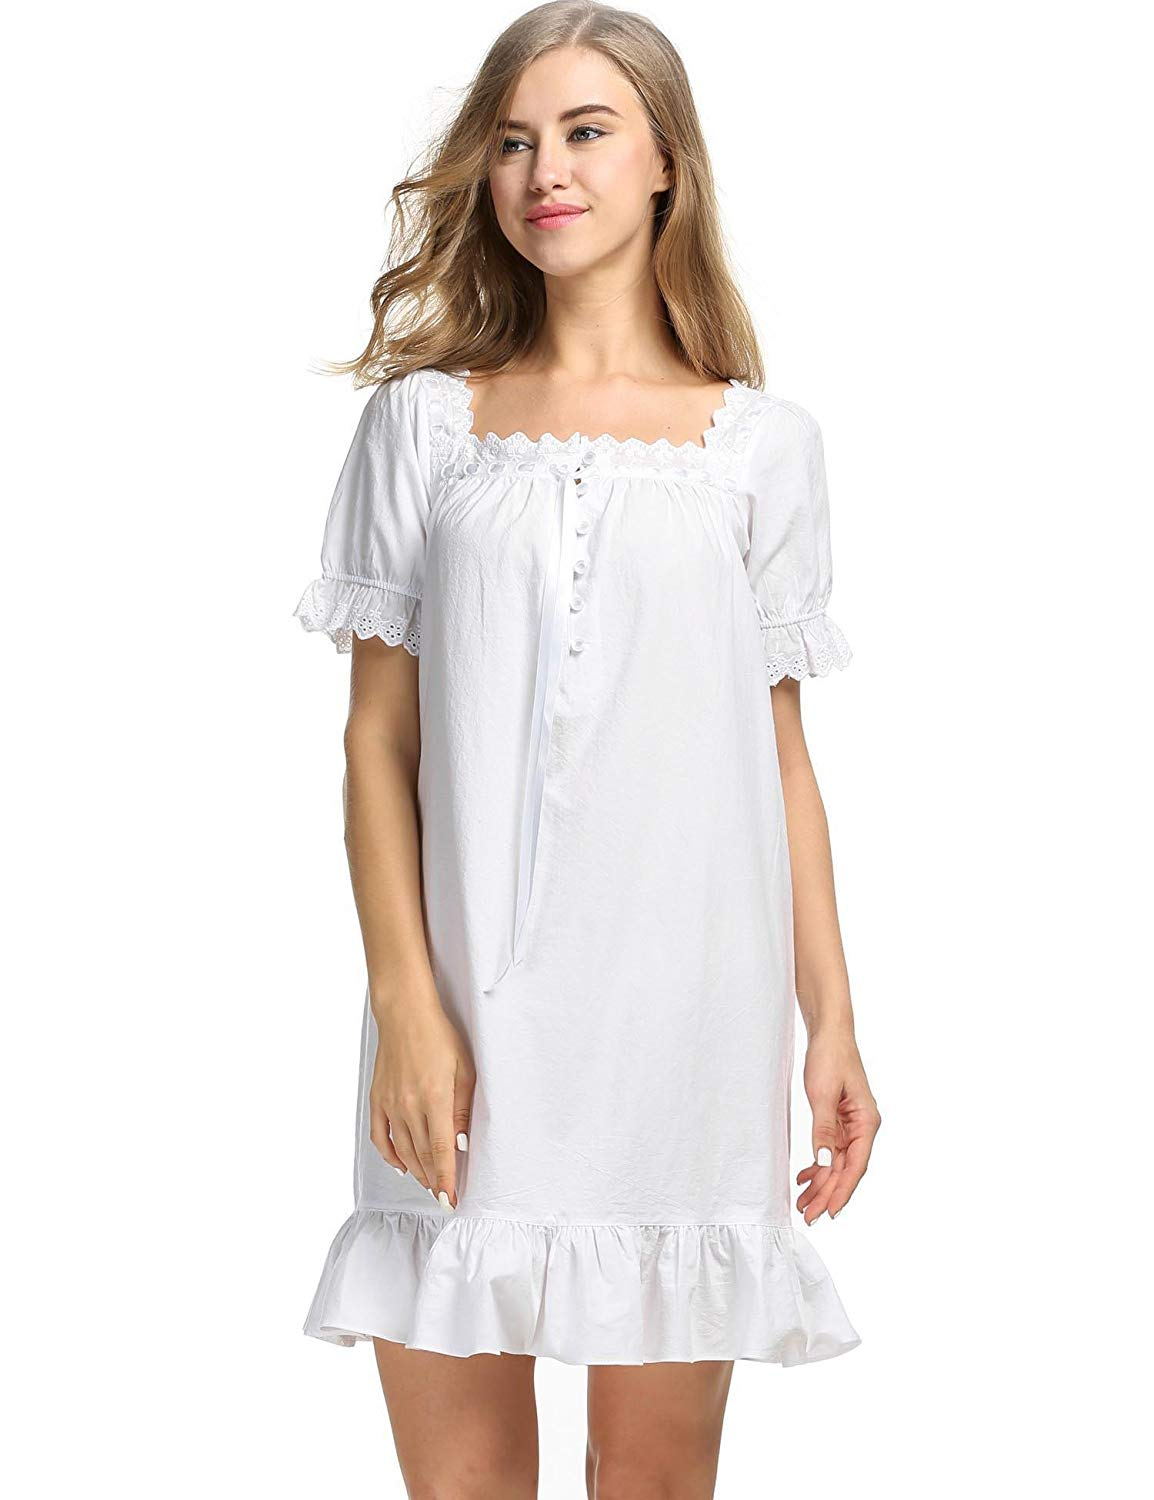 15e9d13001 Get Quotations · Adoeve Womens Vintage Short Sleeve Cotton Sleepshirts  Martha Victorian Nightgowns S-XL